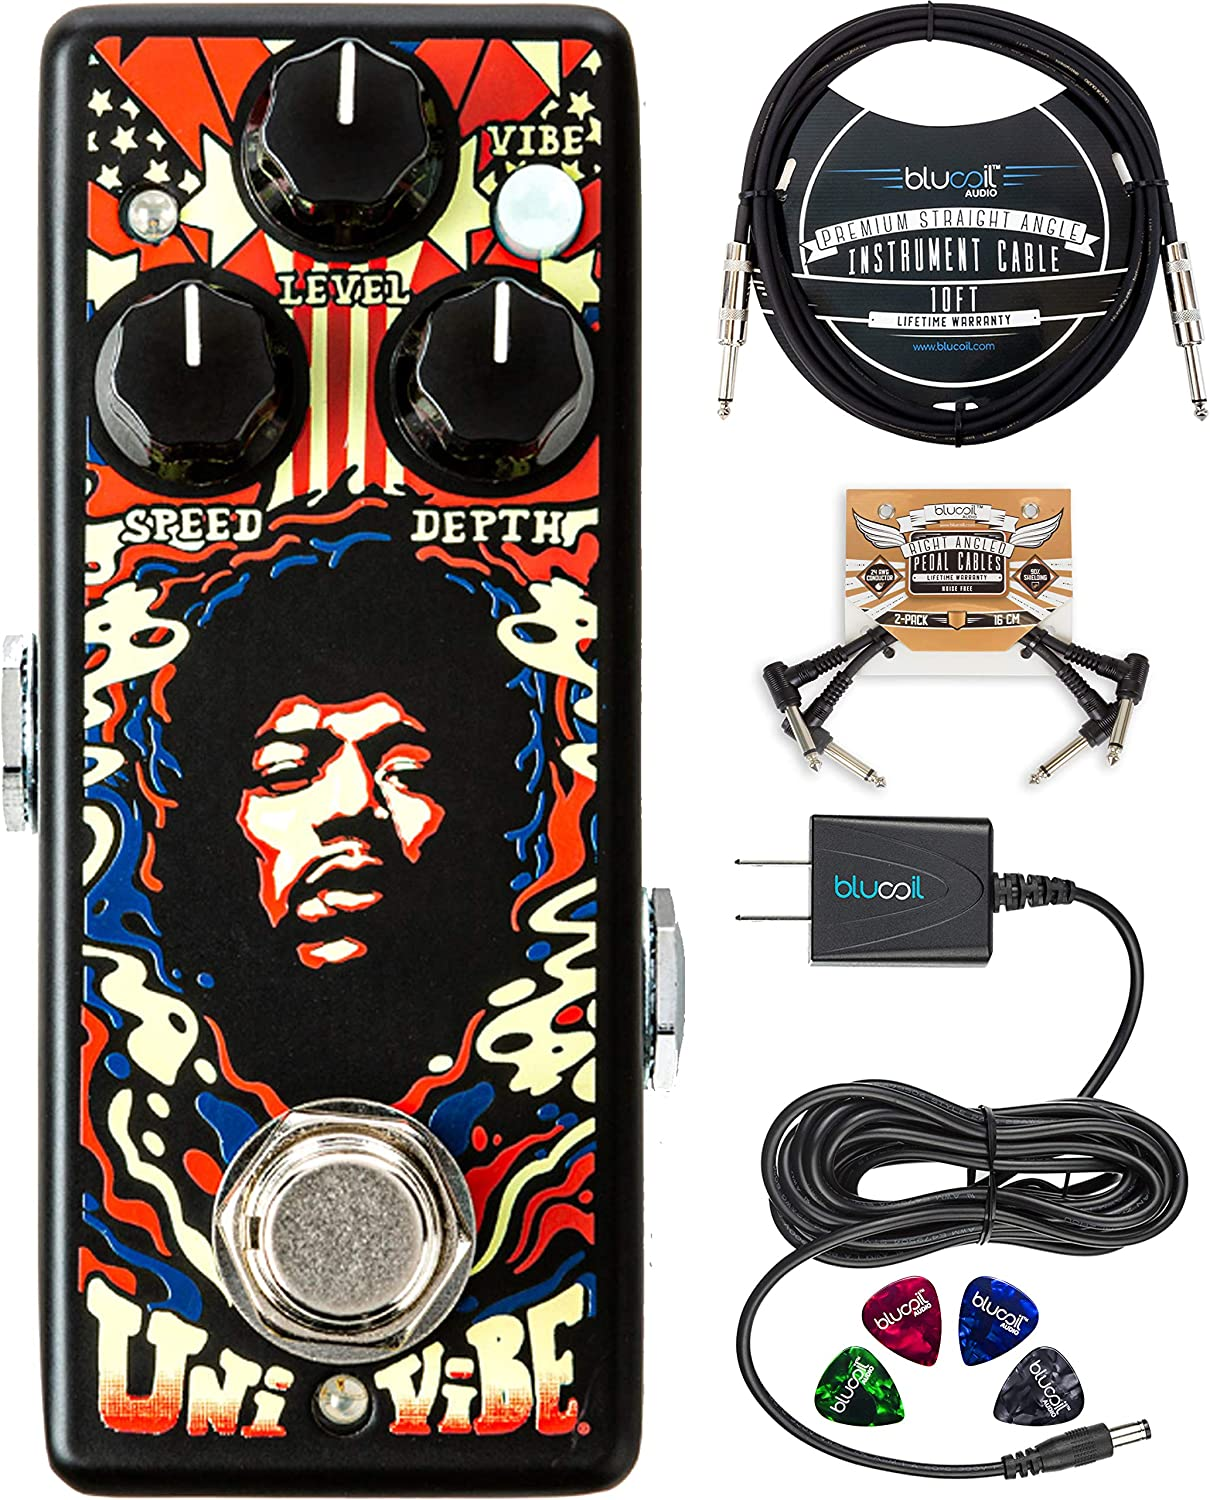 MXR JHW3 Authentic Hendrix '69 Psych Series Uni-Vibe Chorus Vibrato Pedal Bundle with Blucoil 9V Power Supply AC Adapter, 10-FT Straight Instrument Cable (1/4in), 2x Patch Cables, and 4x Guitar Picks